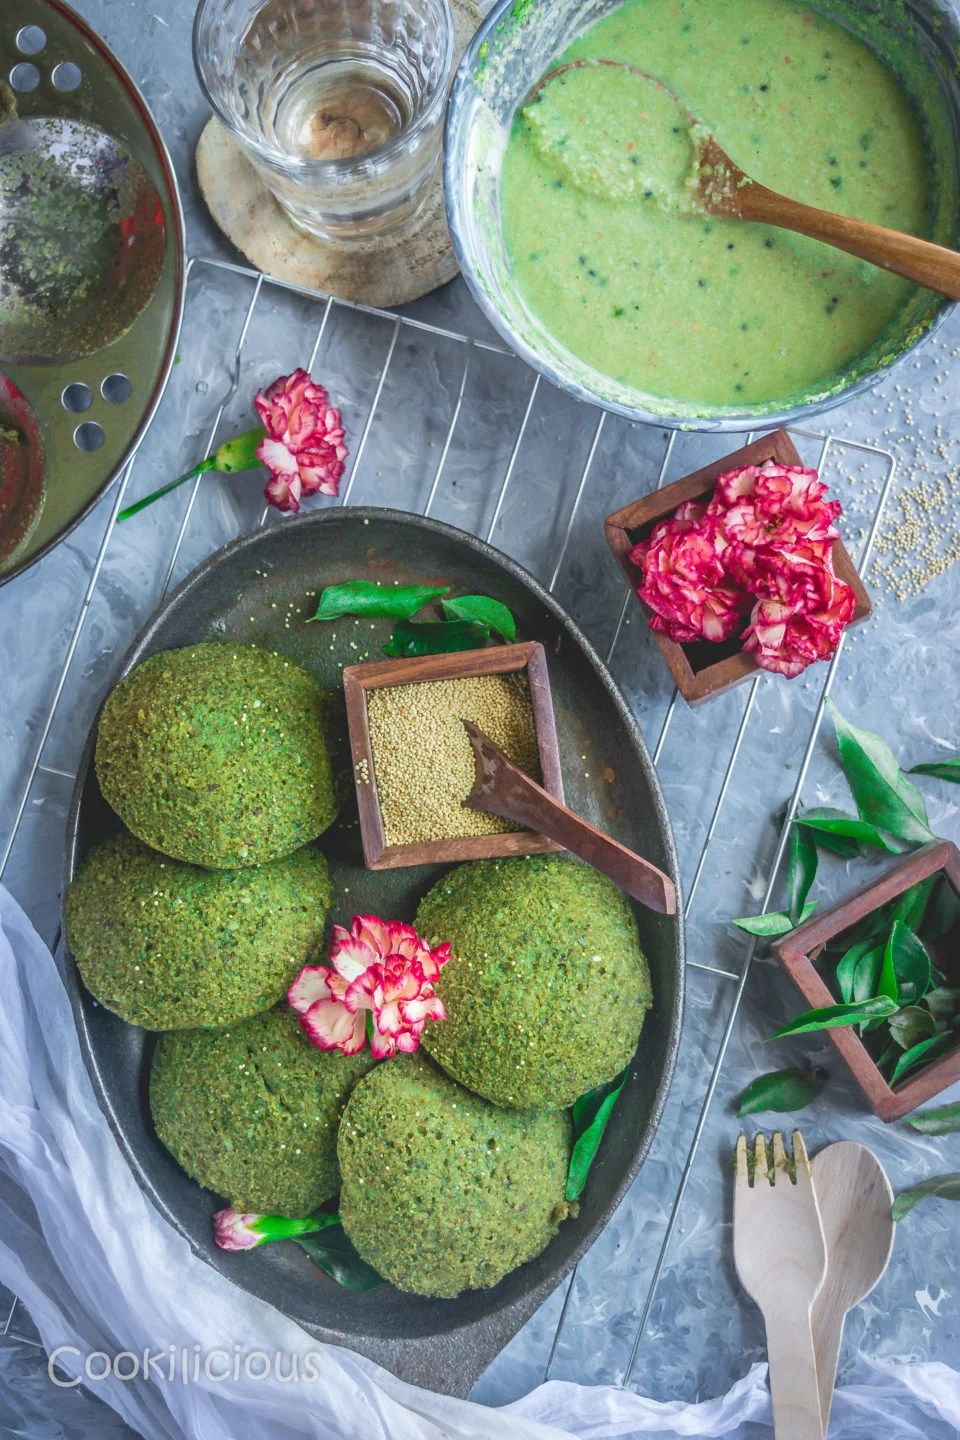 flat lay image of an oval tray filled with Amaranth Potato Idli resting on a wire rack and some red flowers around it. Also a bowl of green chutney in the background